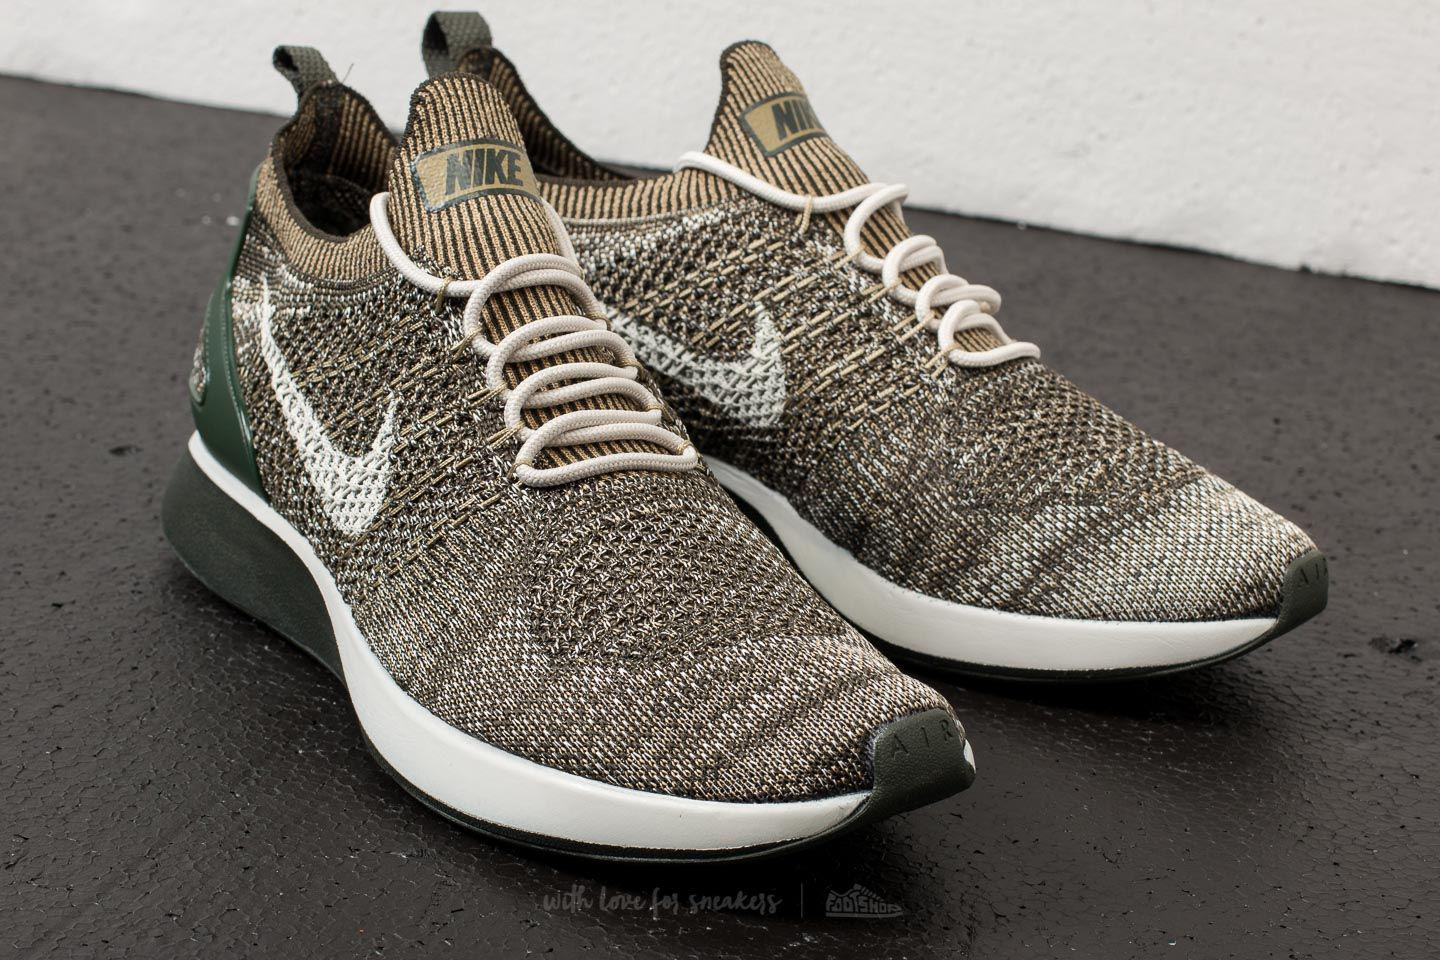 89f15d61b525 Lyst - Nike Air Zoom Mariah Flyknit Racer Sequoia  Neutral Olive for Men